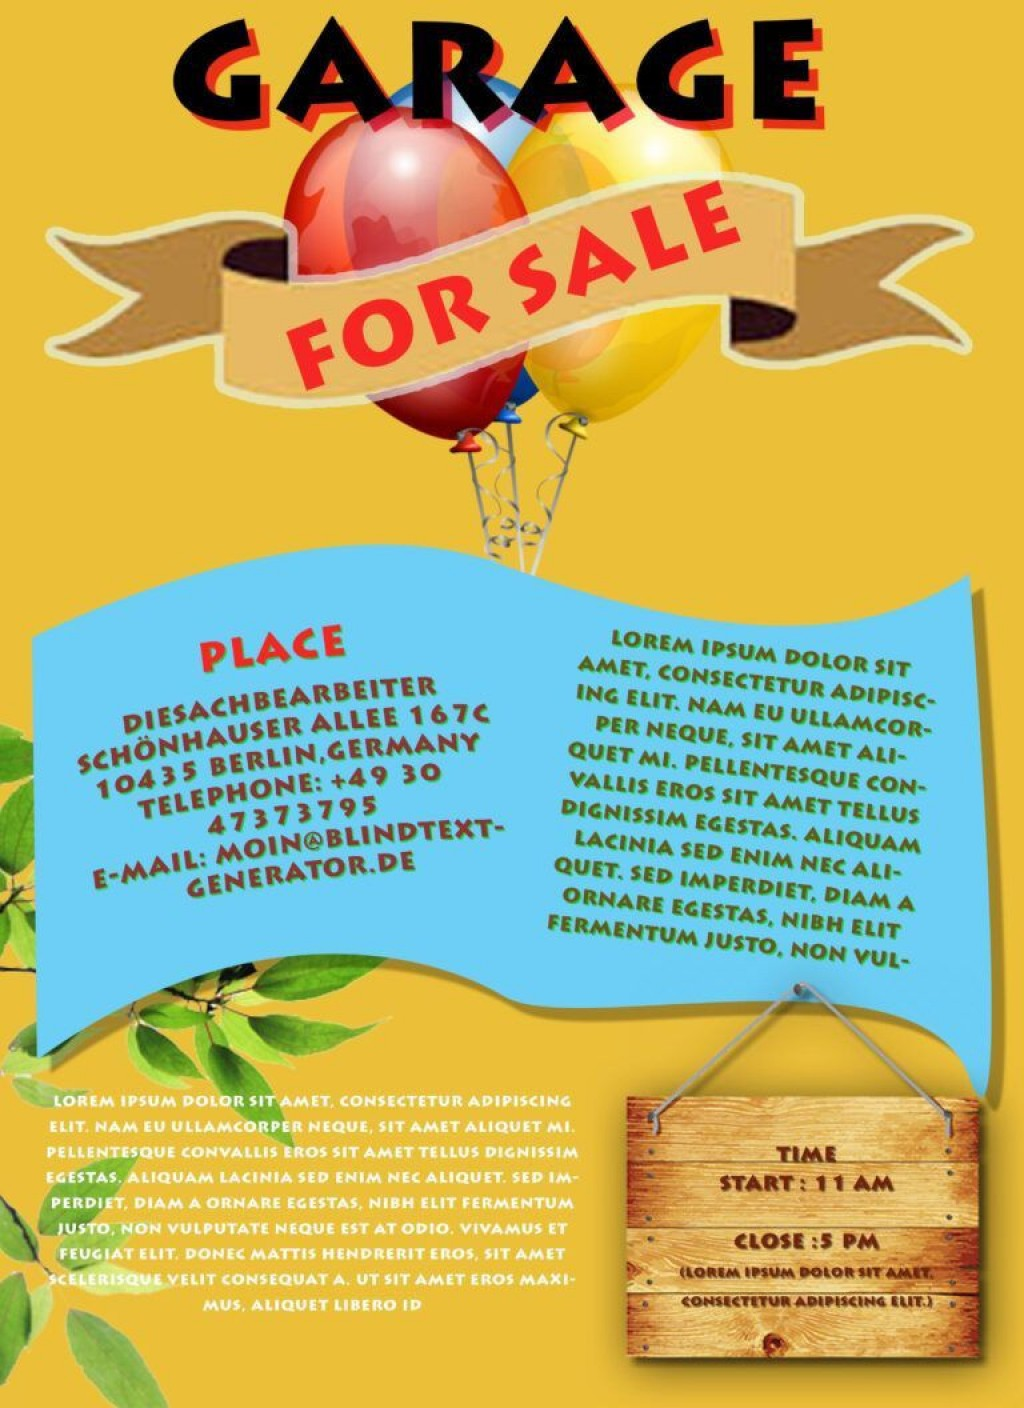 009 Rare Yard Sale Flyer Template Free Idea  Community GarageLarge